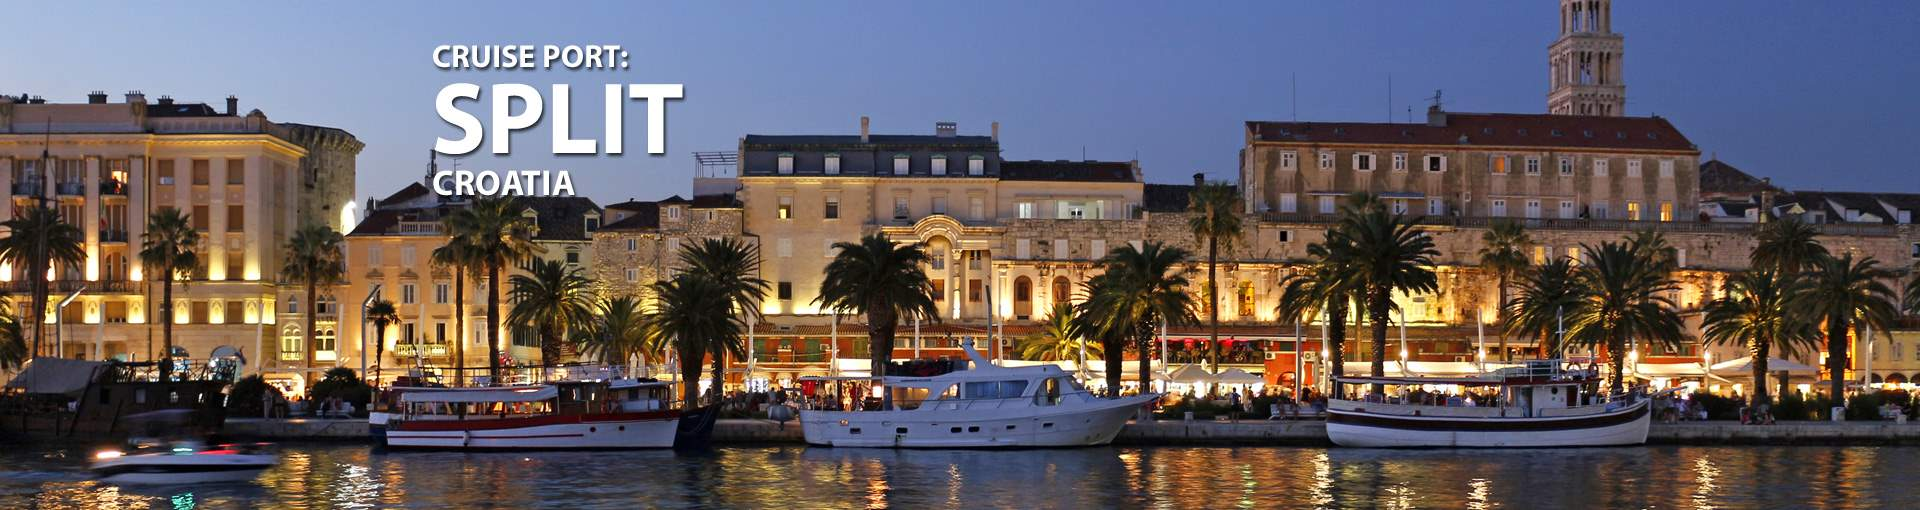 Cruises to Split, Croatia